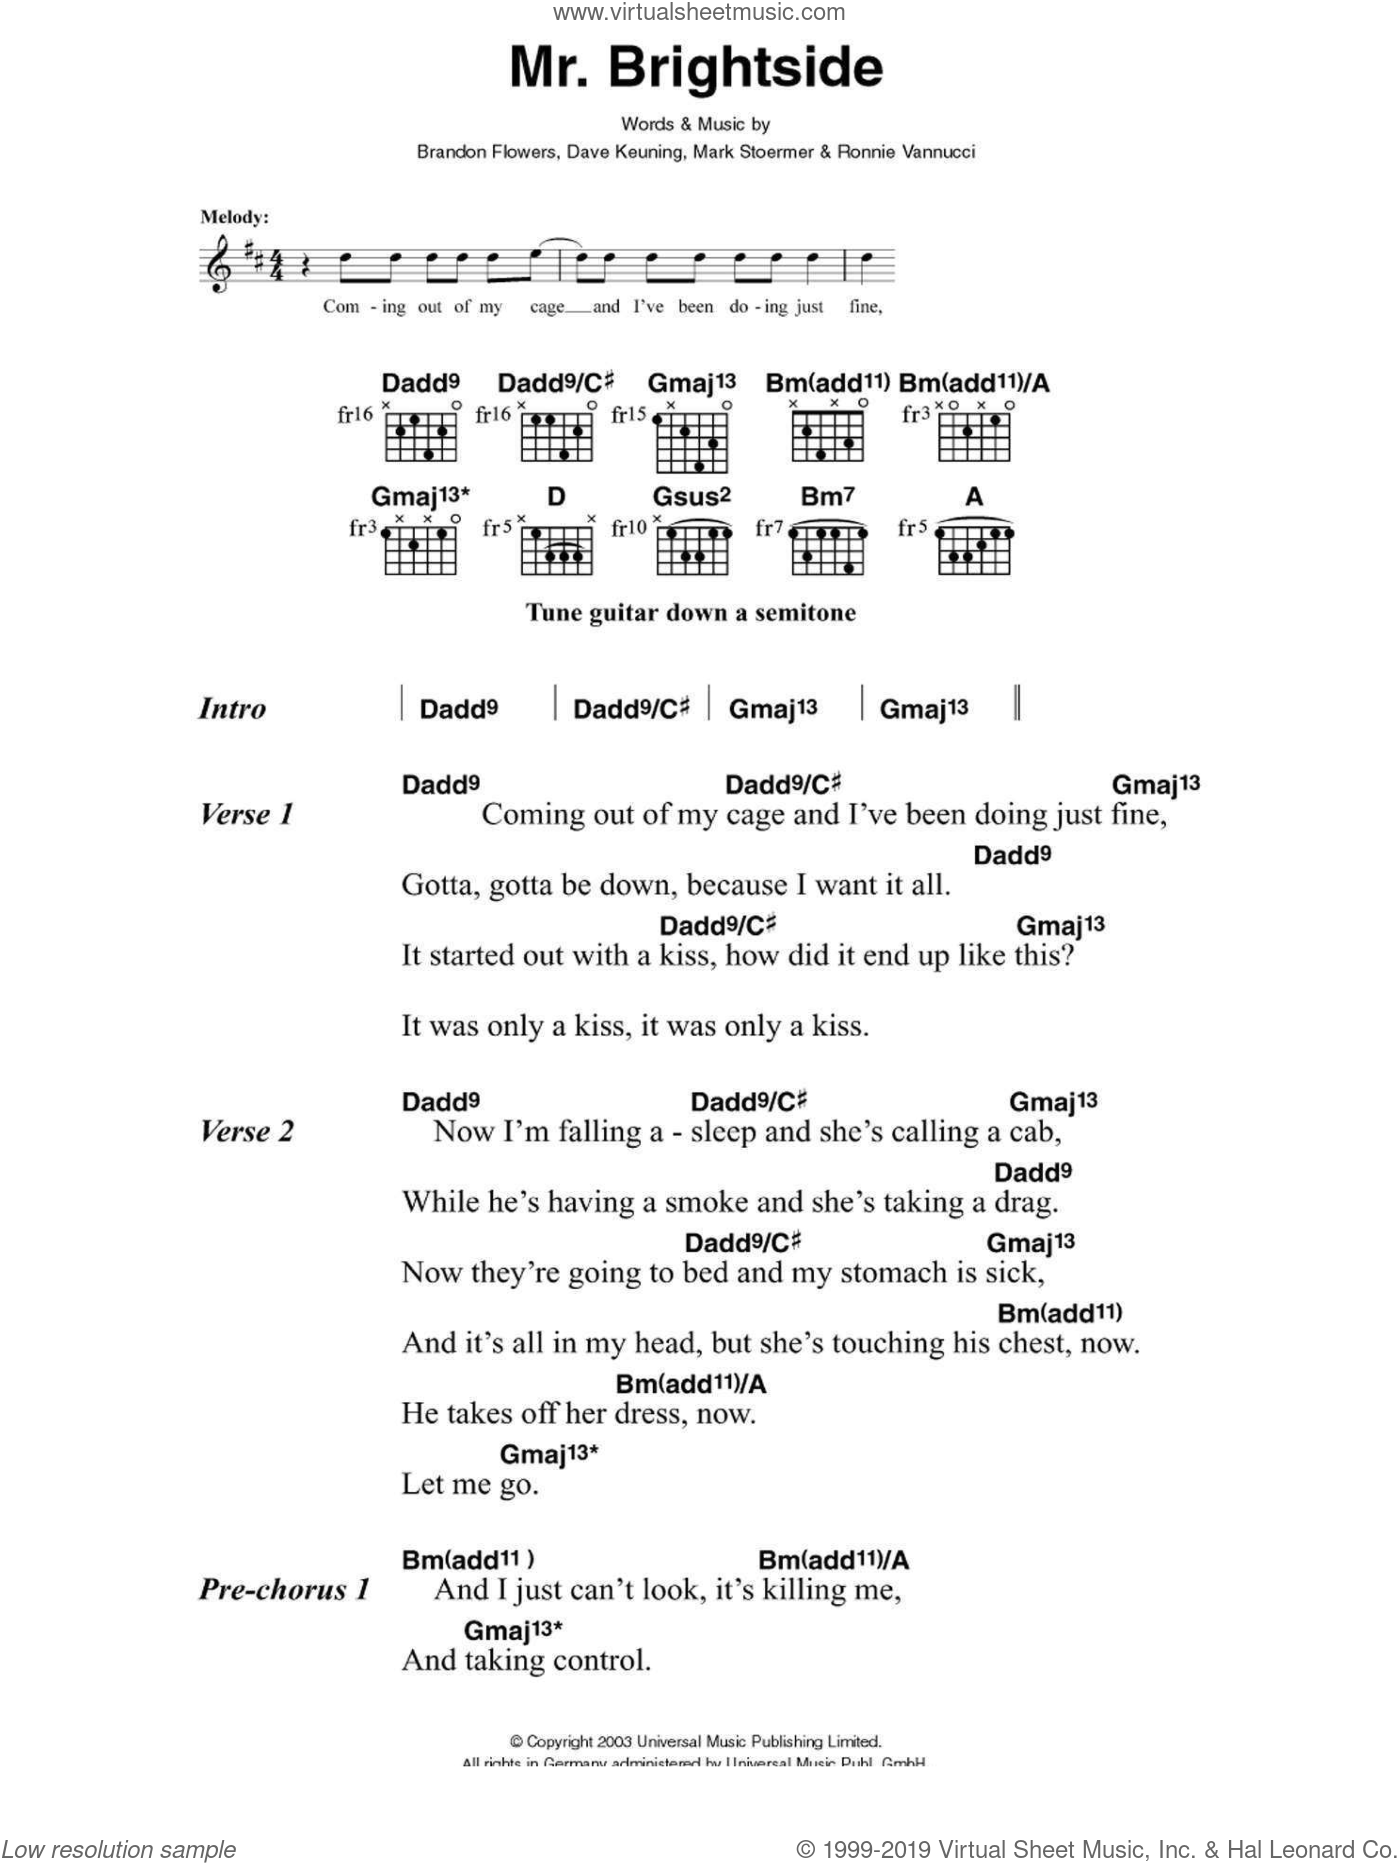 Mr. Brightside sheet music for guitar (chords) by The Killers, Brandon Flowers, Dave Keuning, Mark Stoermer and Ronnie Vannucci, intermediate skill level